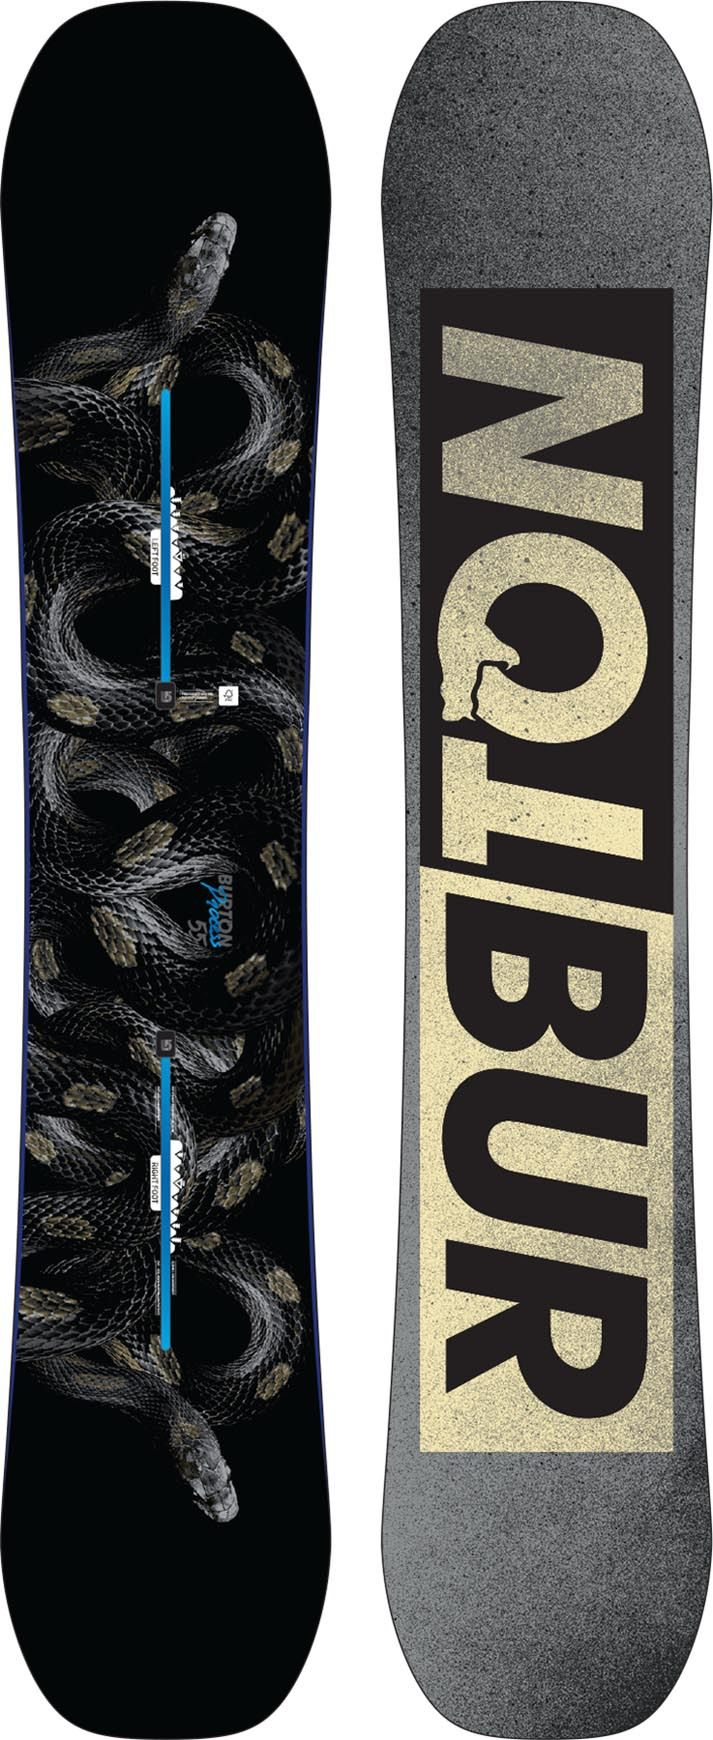 117 best snowboards images on pinterest snowboarding for Burton modified fish